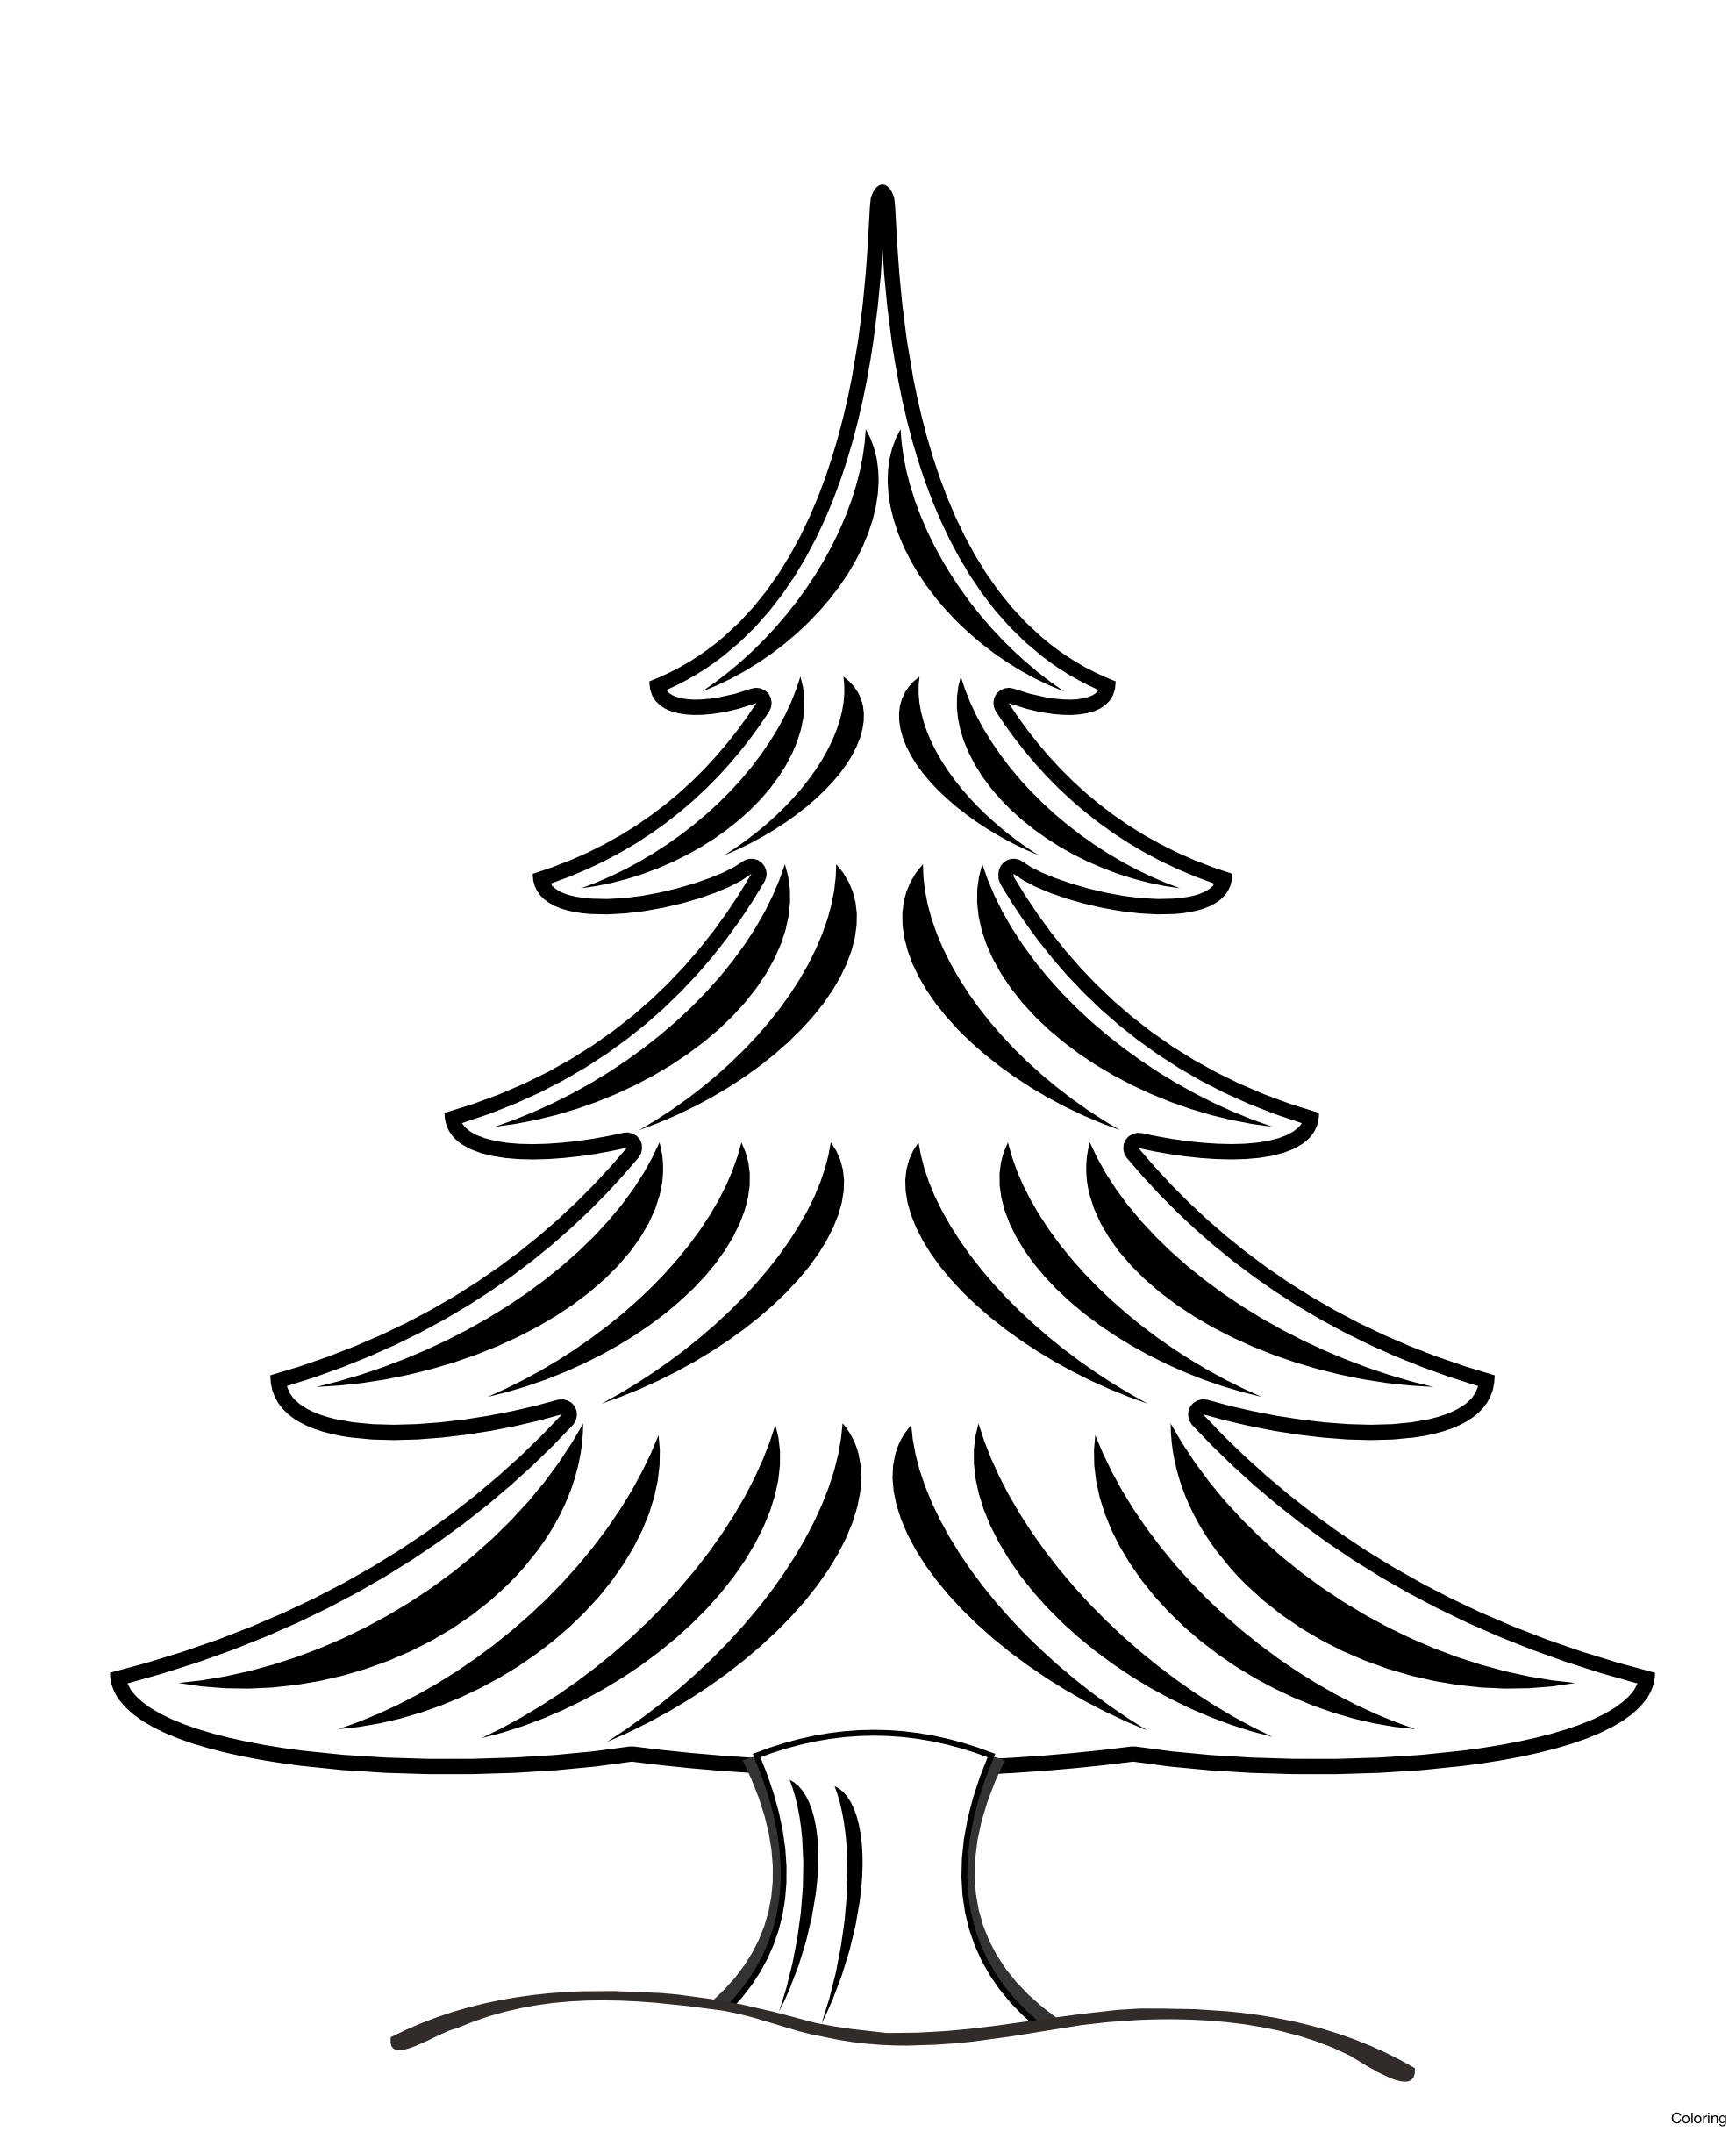 Needle clipart pine tree. Fir drawing at getdrawings